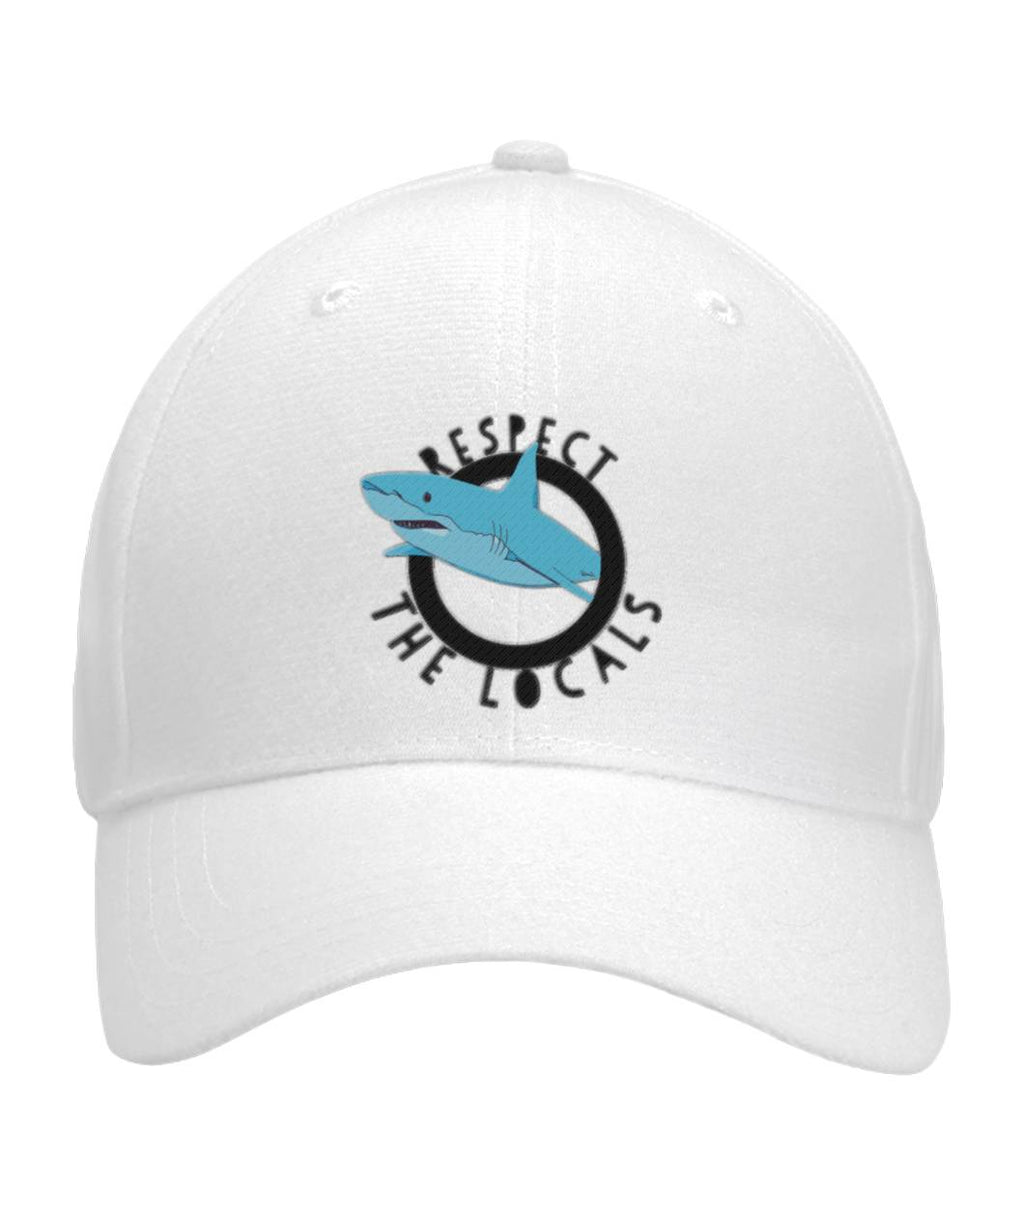 Respect the Locals Baseball Cap - Connected Clothing Company